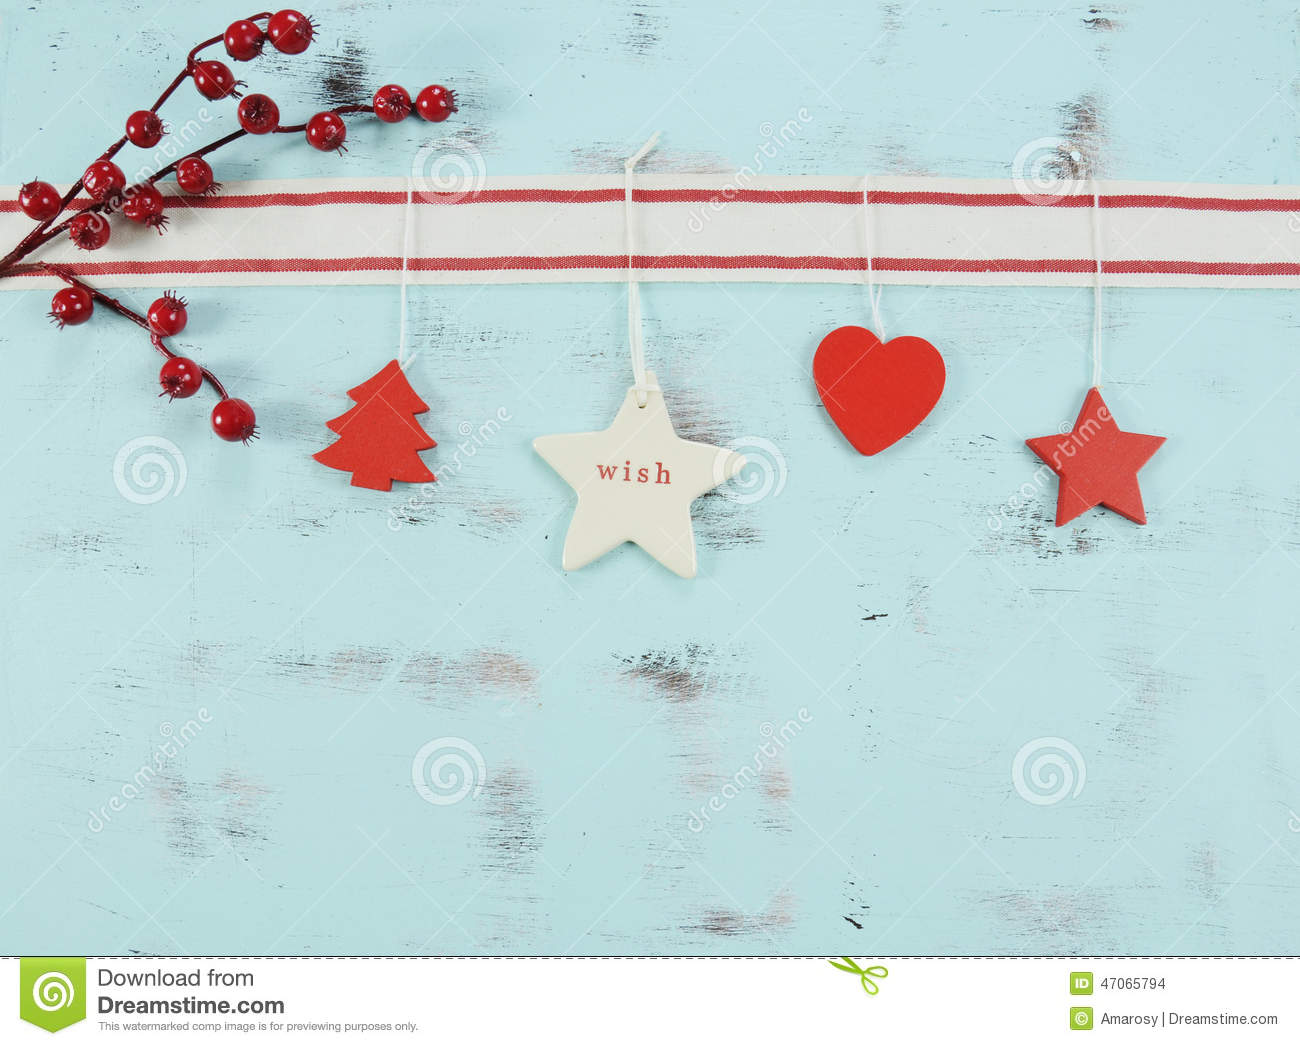 download modern red and white hanging christmas decorations on aqua blue wood background stock photo